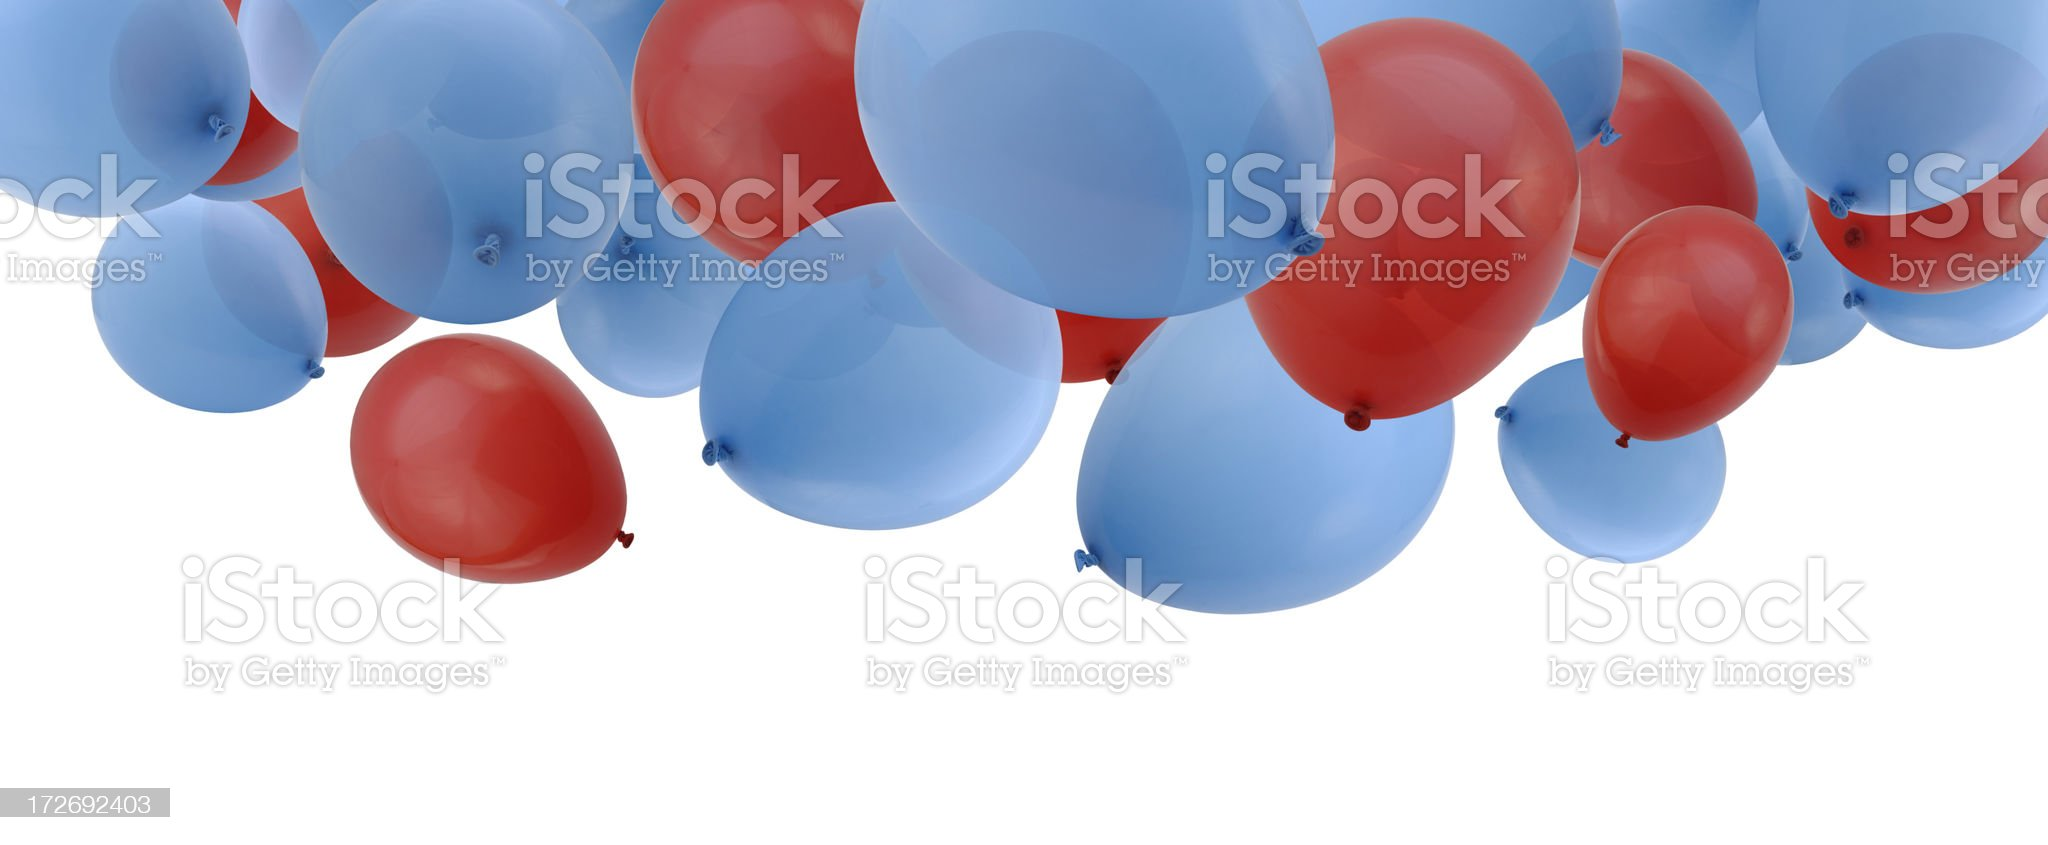 Falling Balloons royalty-free stock photo